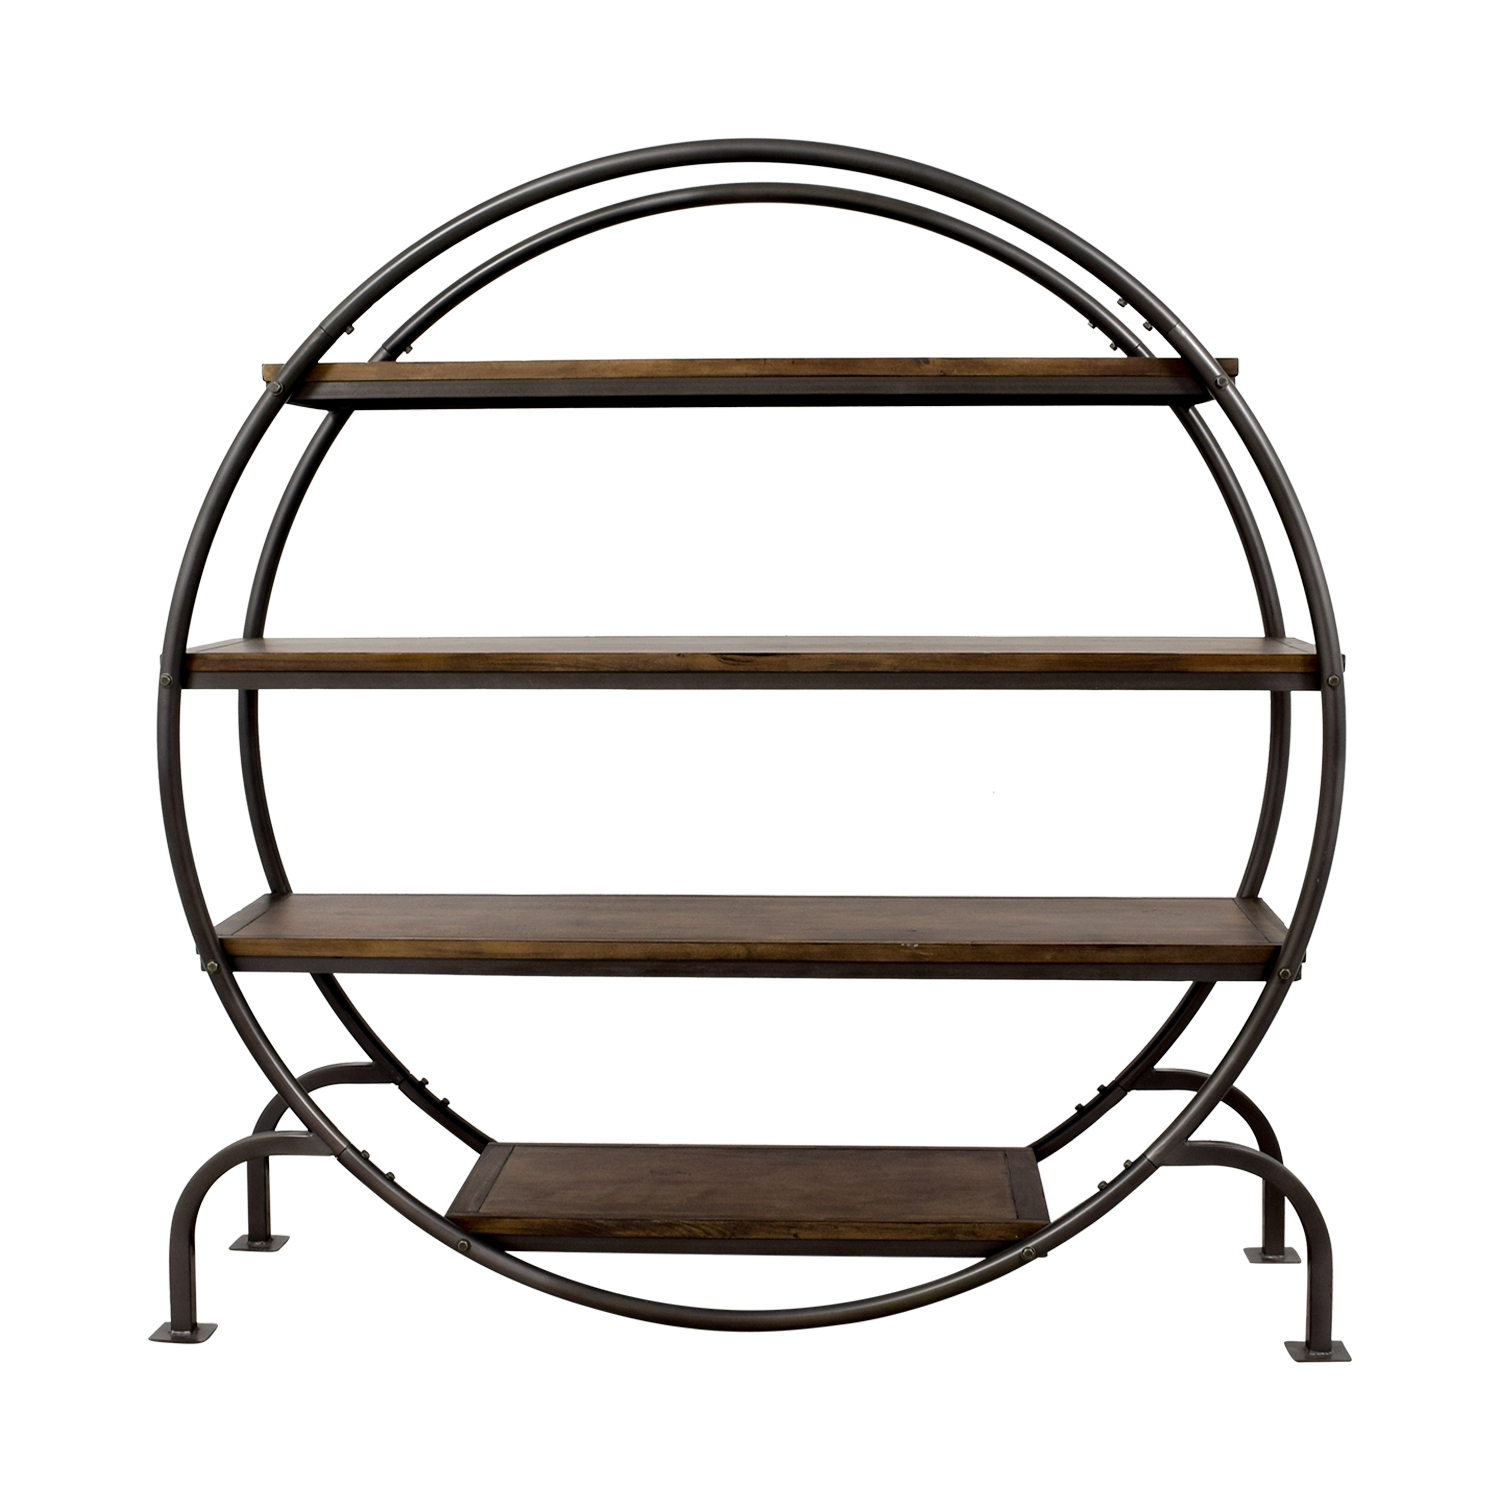 [%61% Off – World Market World Market Round Bookcase / Storage With Regard To Widely Used Round Bookcases|Round Bookcases Inside Well Known 61% Off – World Market World Market Round Bookcase / Storage|Favorite Round Bookcases In 61% Off – World Market World Market Round Bookcase / Storage|Preferred 61% Off – World Market World Market Round Bookcase / Storage Intended For Round Bookcases%] (View 3 of 15)